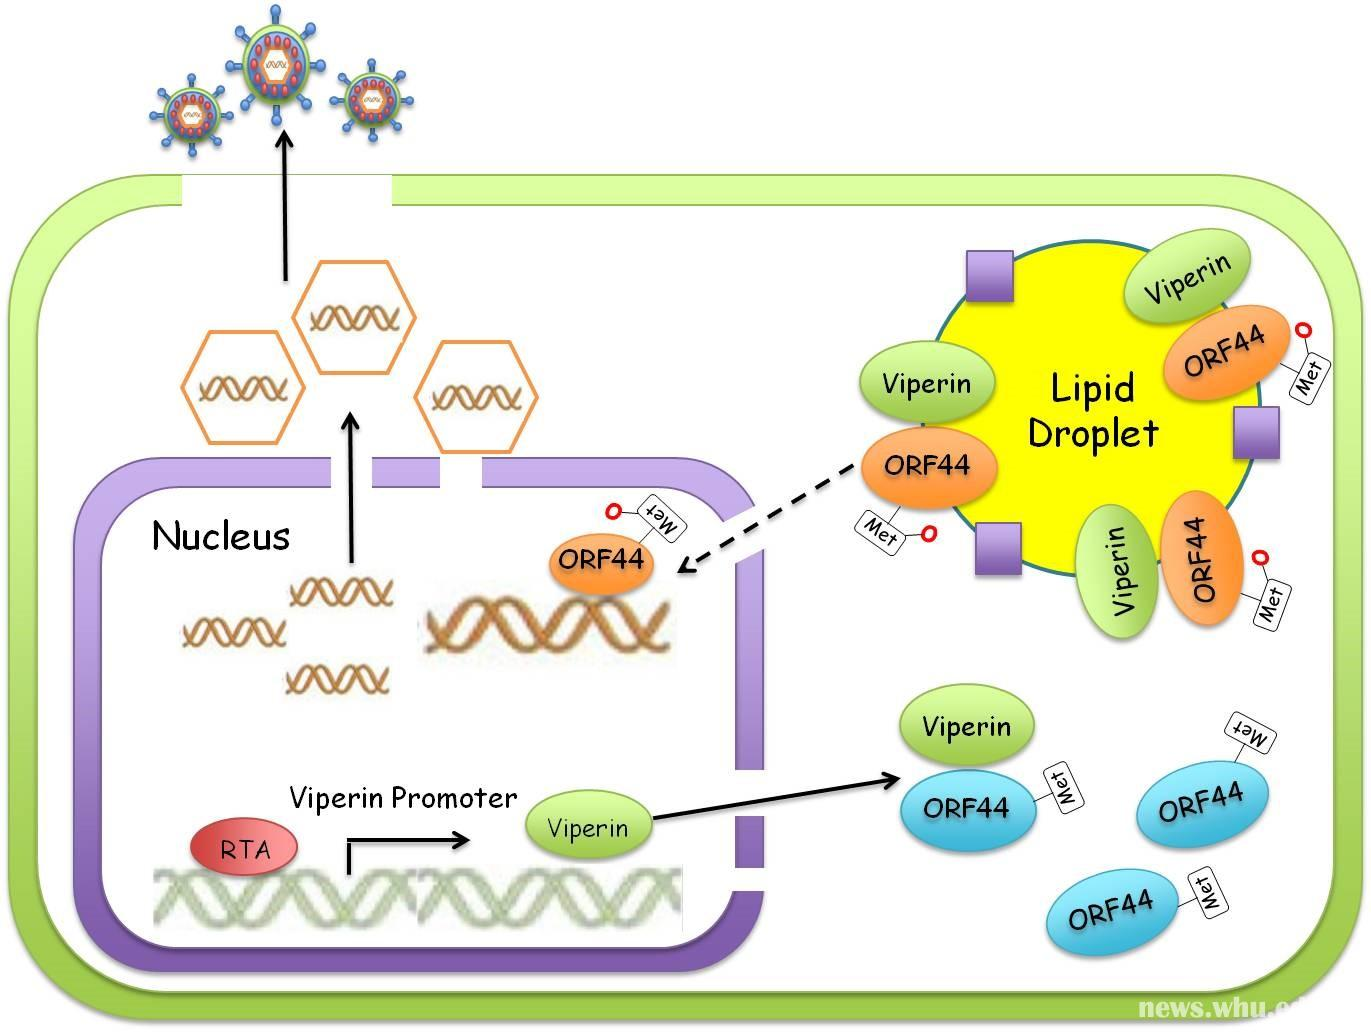 Significant findings by Lan Ke's research team:  Methionine oxidation of representative helicases promotes their expression and functions